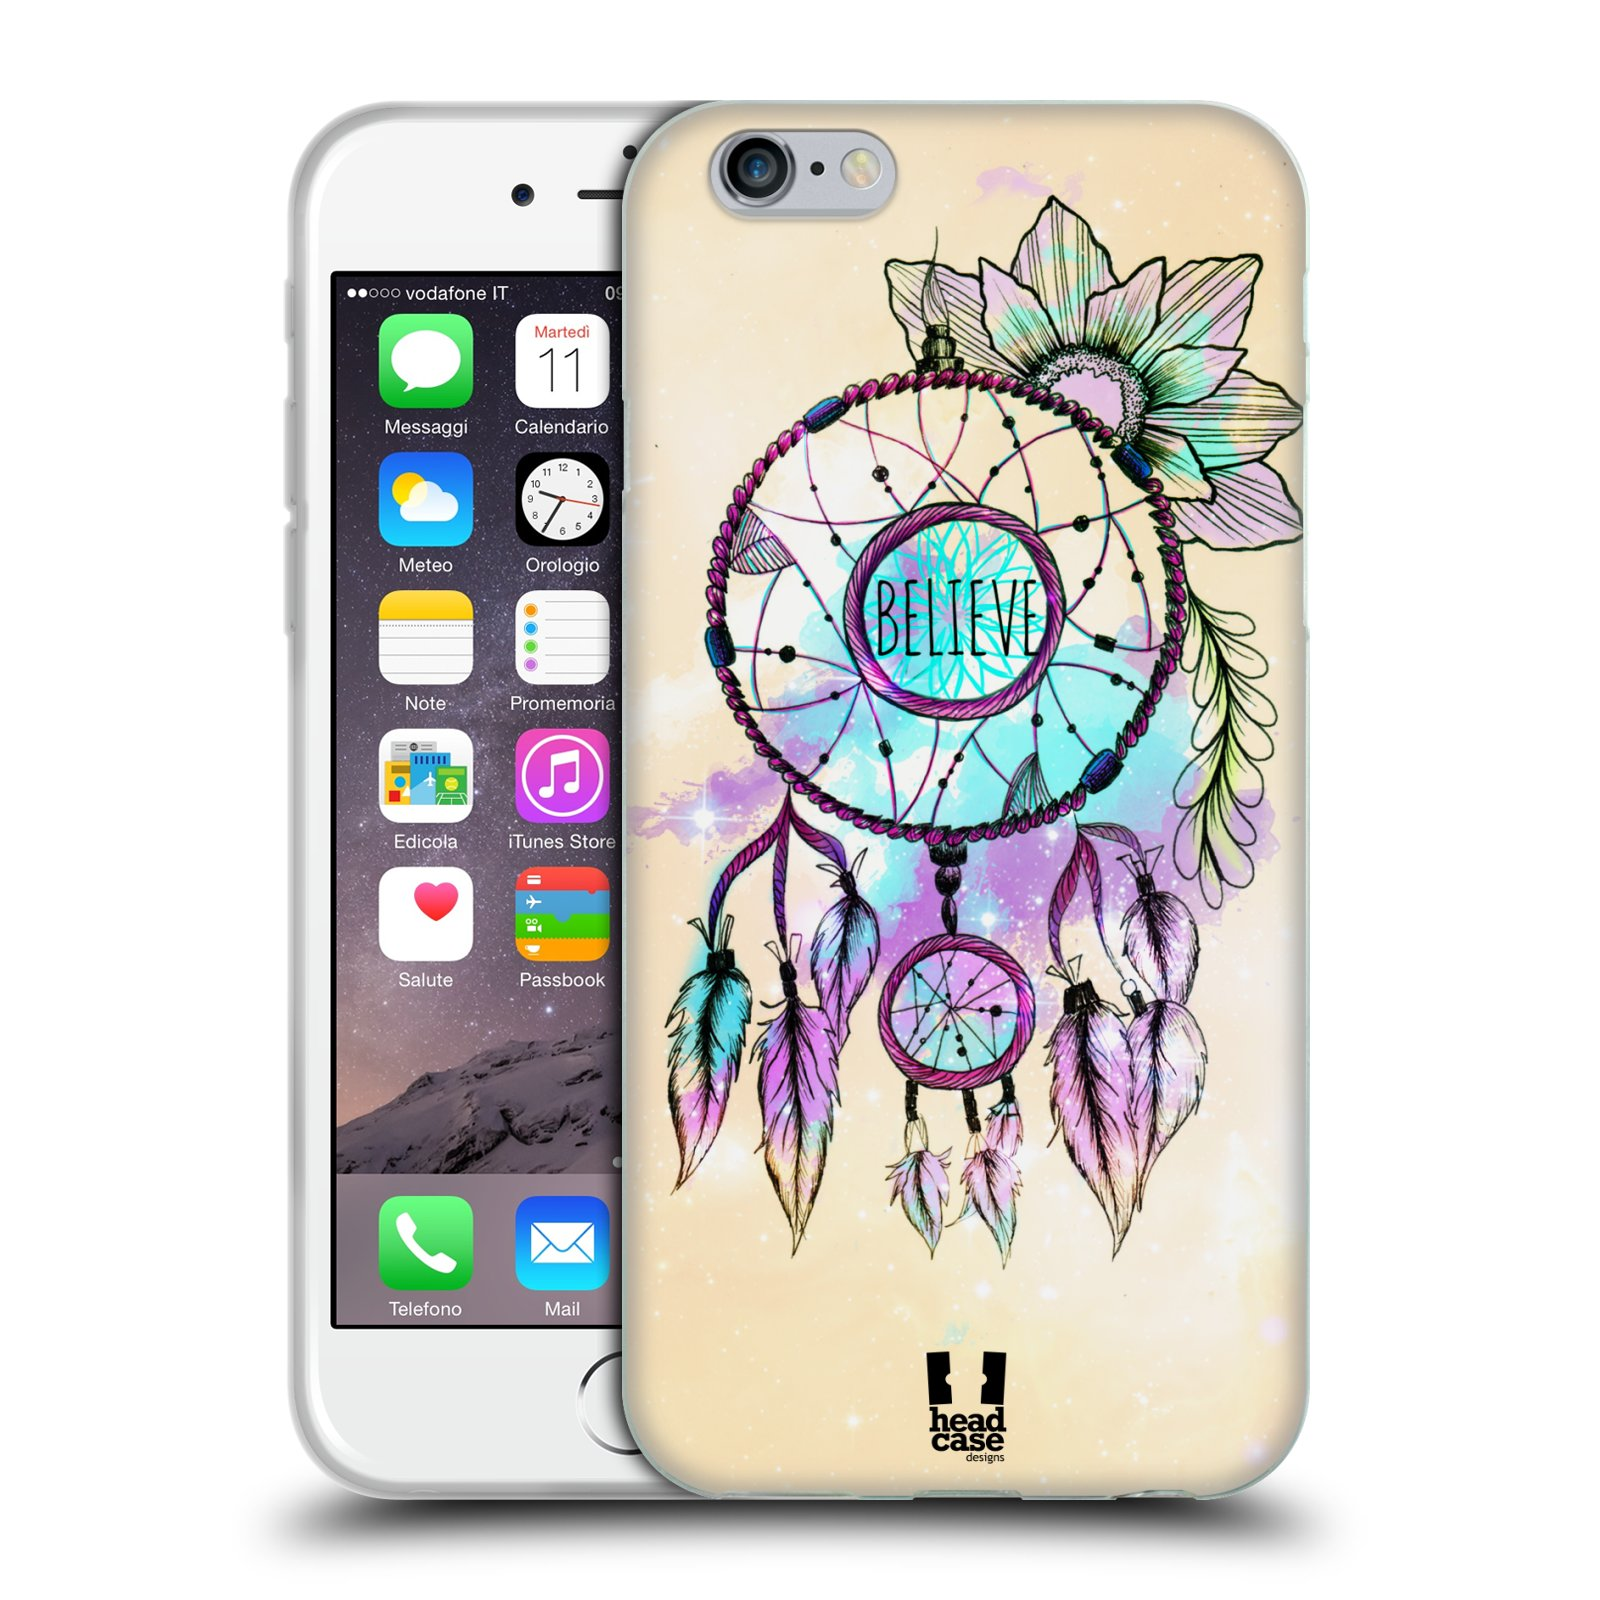 Silikonové pouzdro na mobil Apple iPhone 6 a 6S HEAD CASE MIX BELIEVE